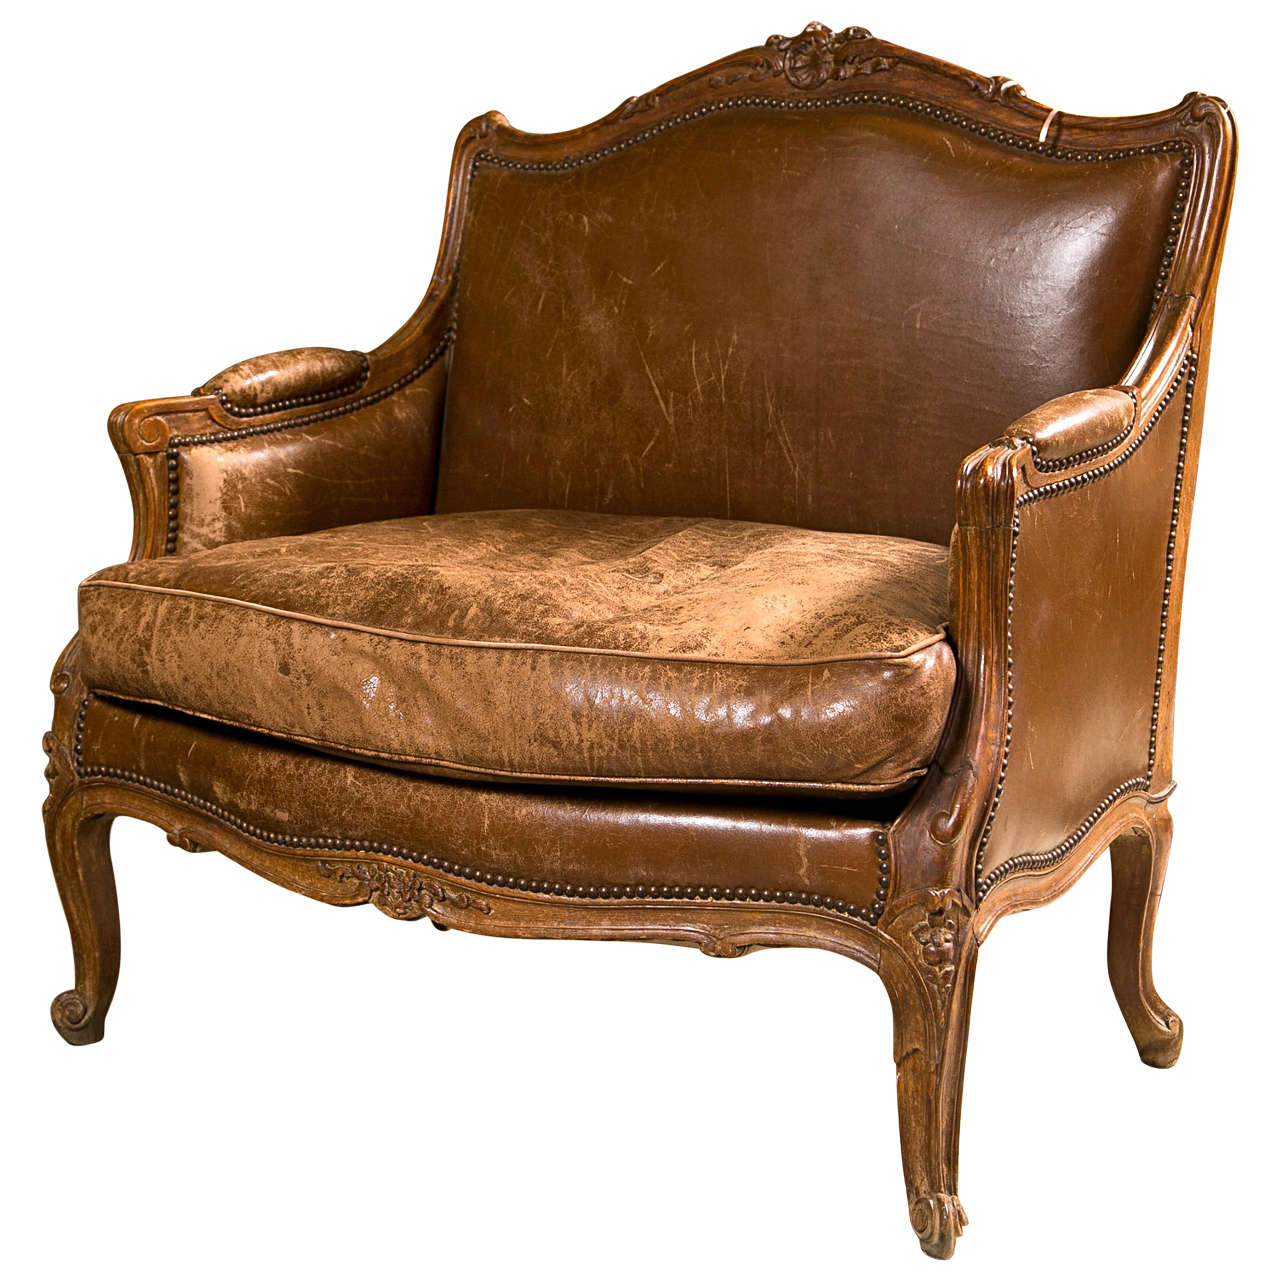 french provincial style bergere chair for sale at 1stdibs. Black Bedroom Furniture Sets. Home Design Ideas